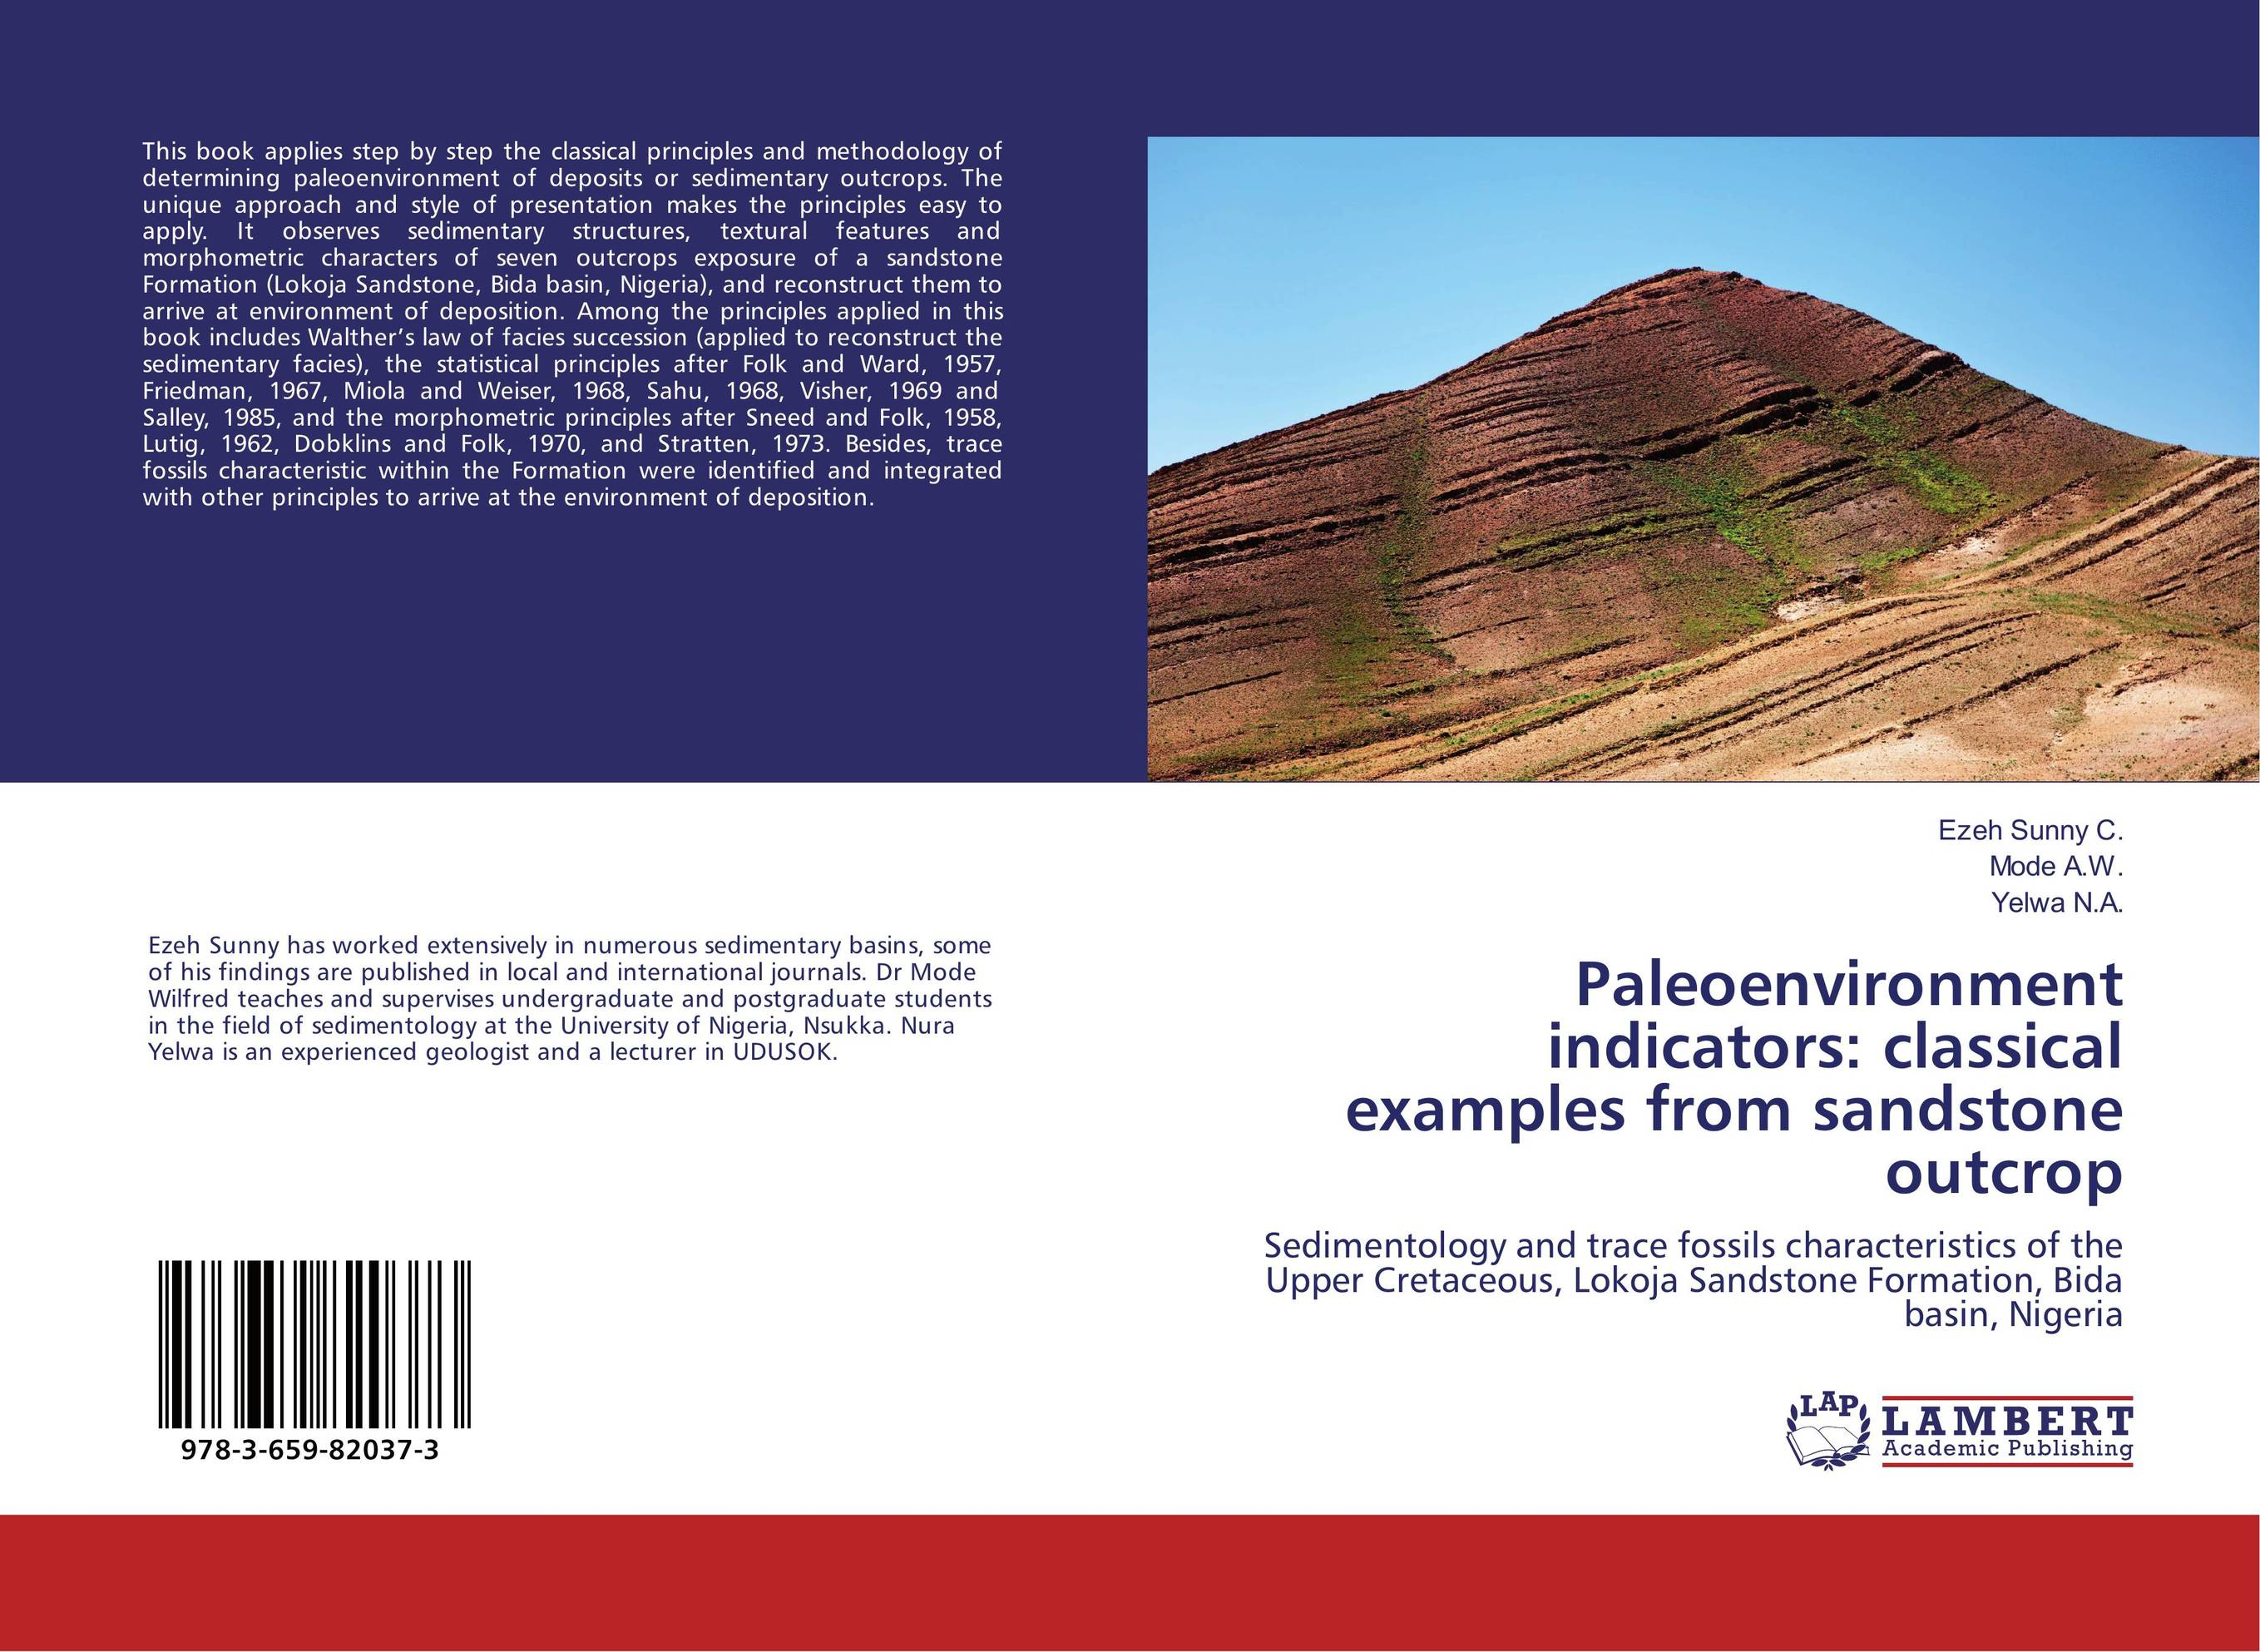 Paleoenvironment indicators: classical examples from sandstone outcrop folk beliefs and nourishment of environment